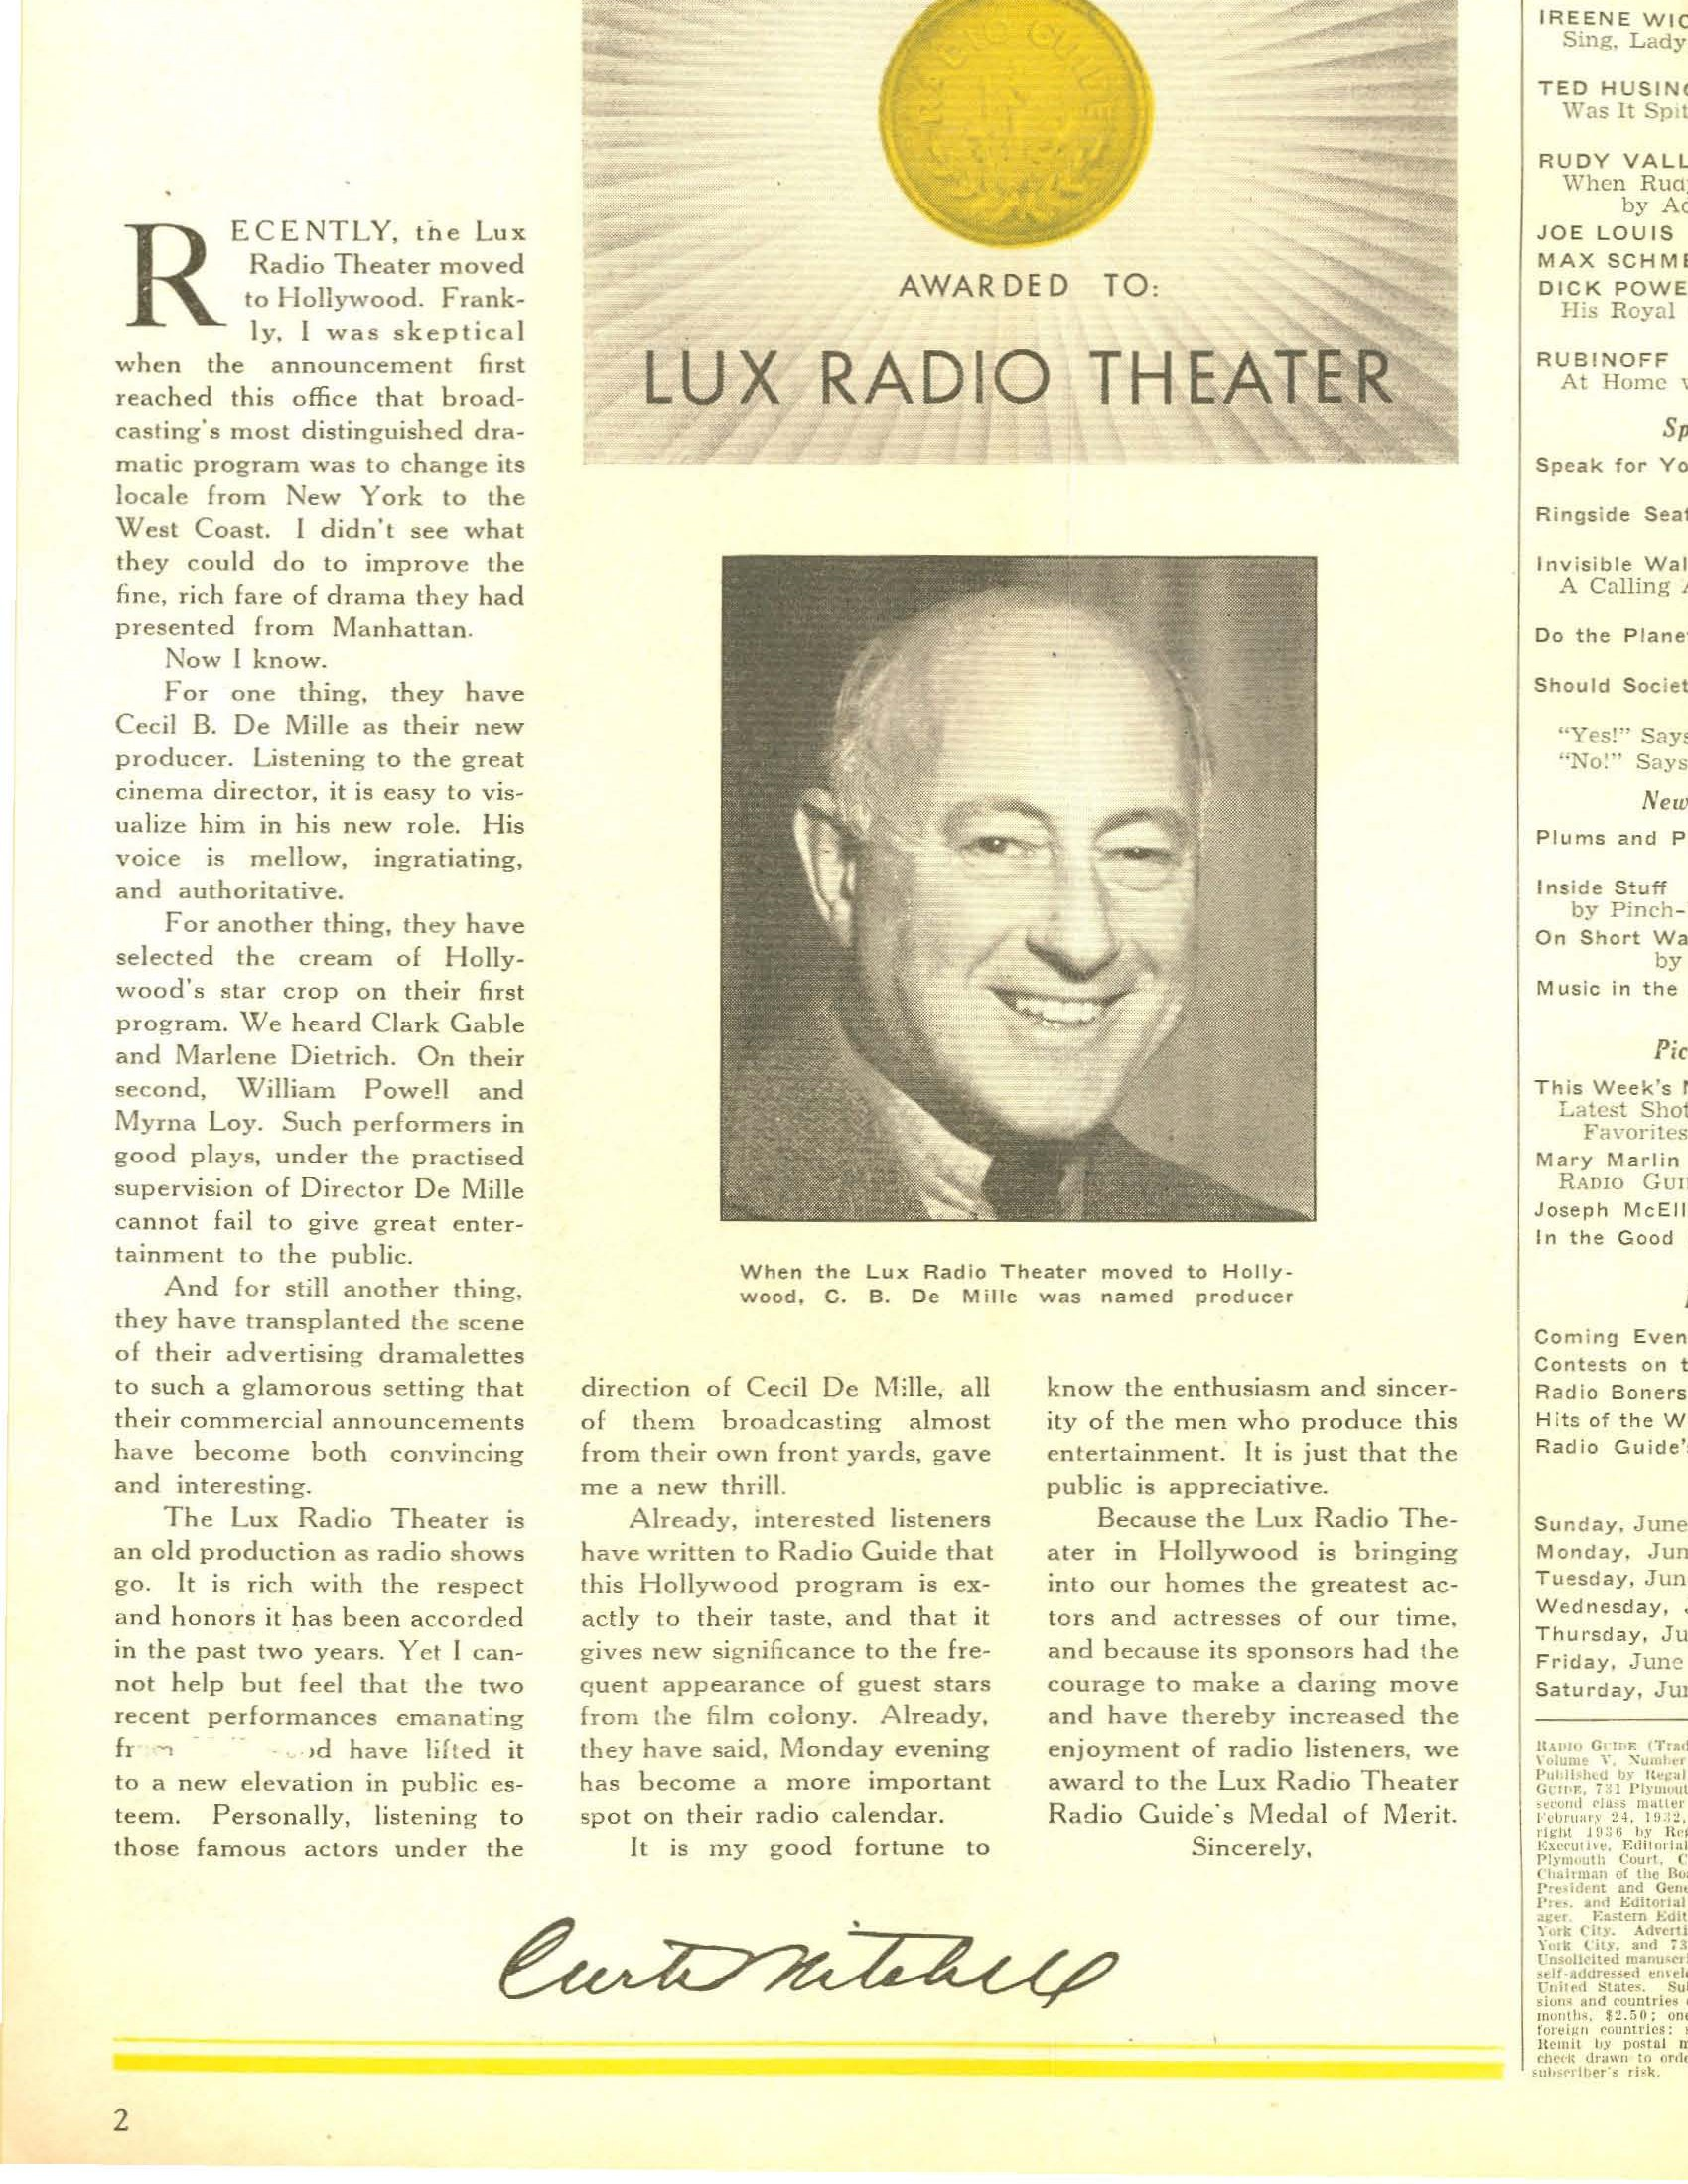 Lux_Awarded_from_Radio_Guide_36-06-20